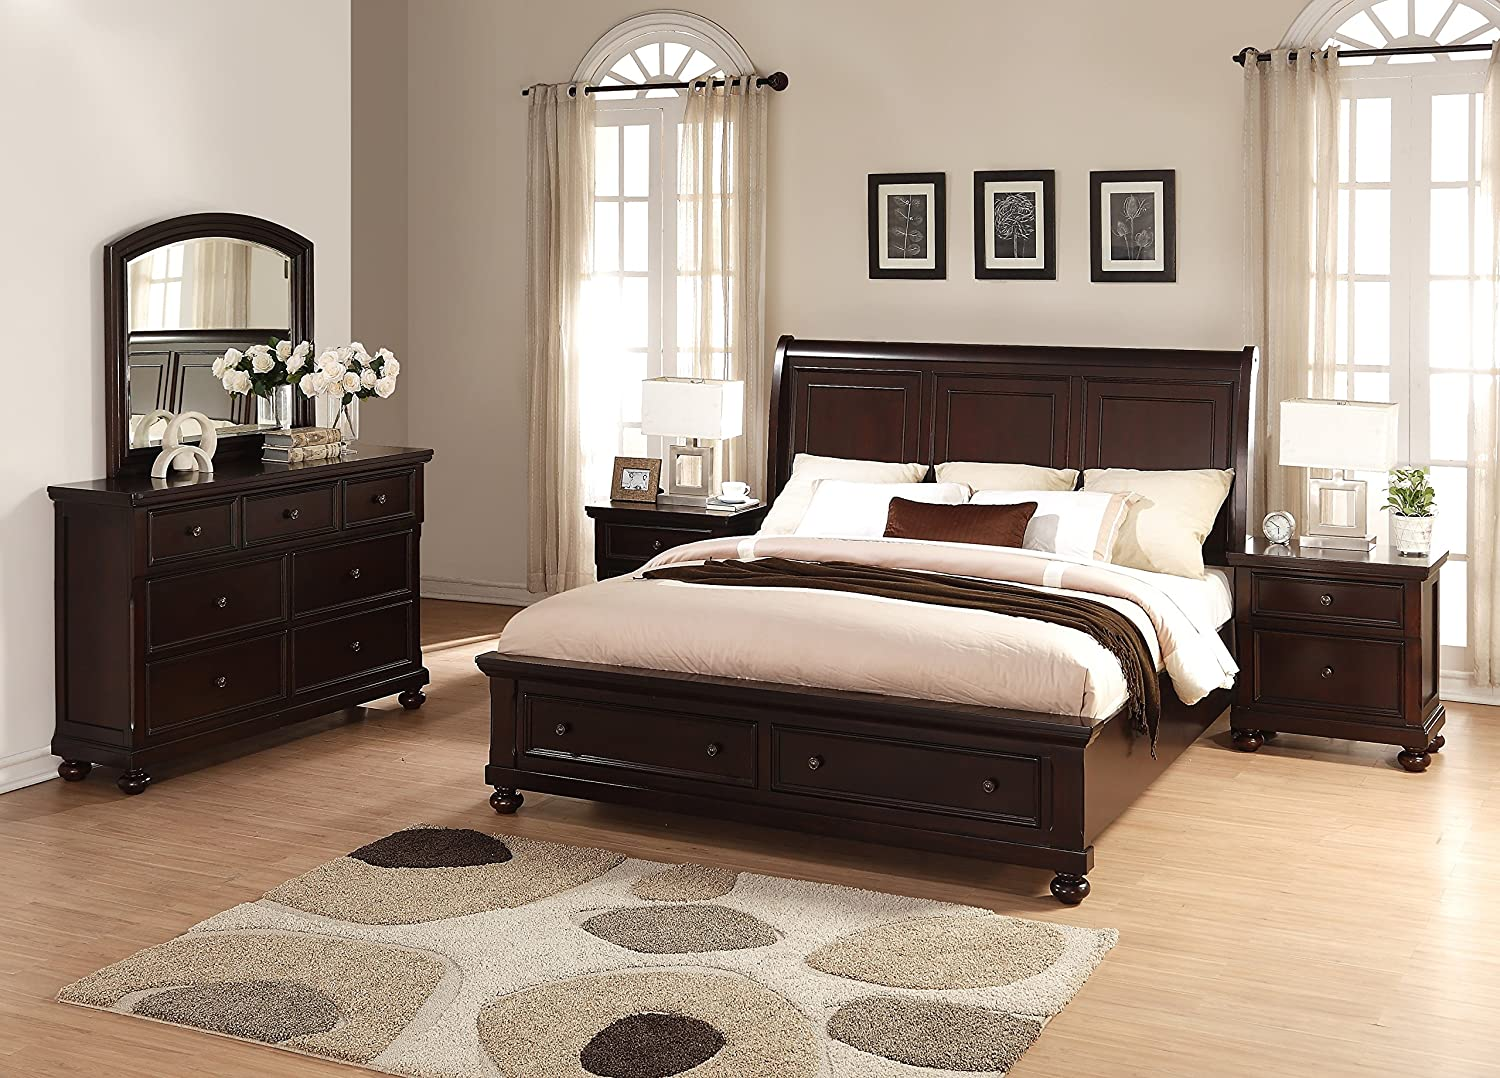 Amazon.com: Brishland Rustic Cherry Storage Bedroom set, Queen Bed ...